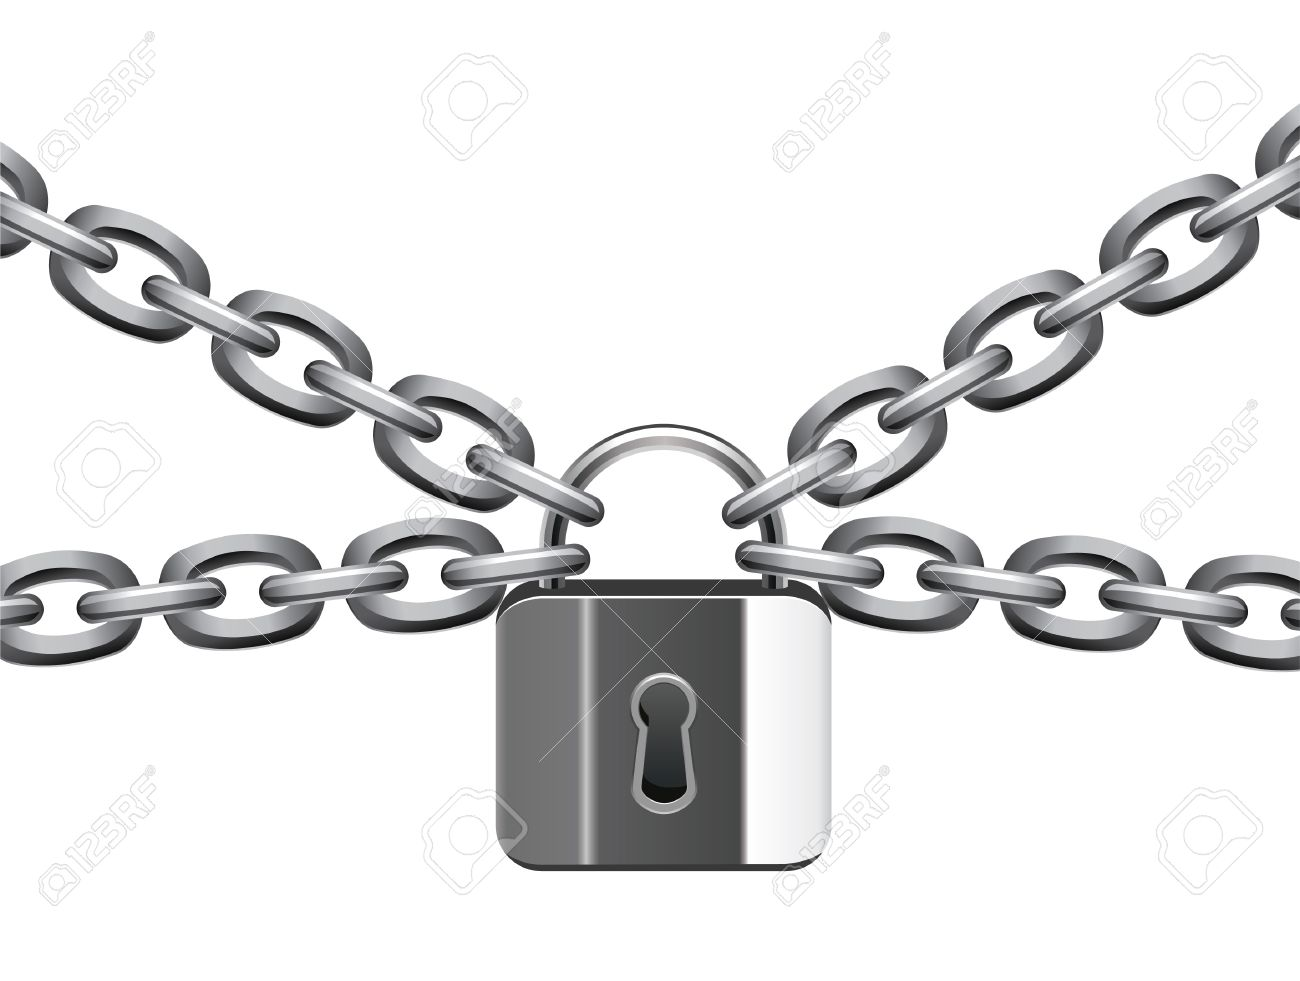 vector illustration of metal chain and padlock - 9653607